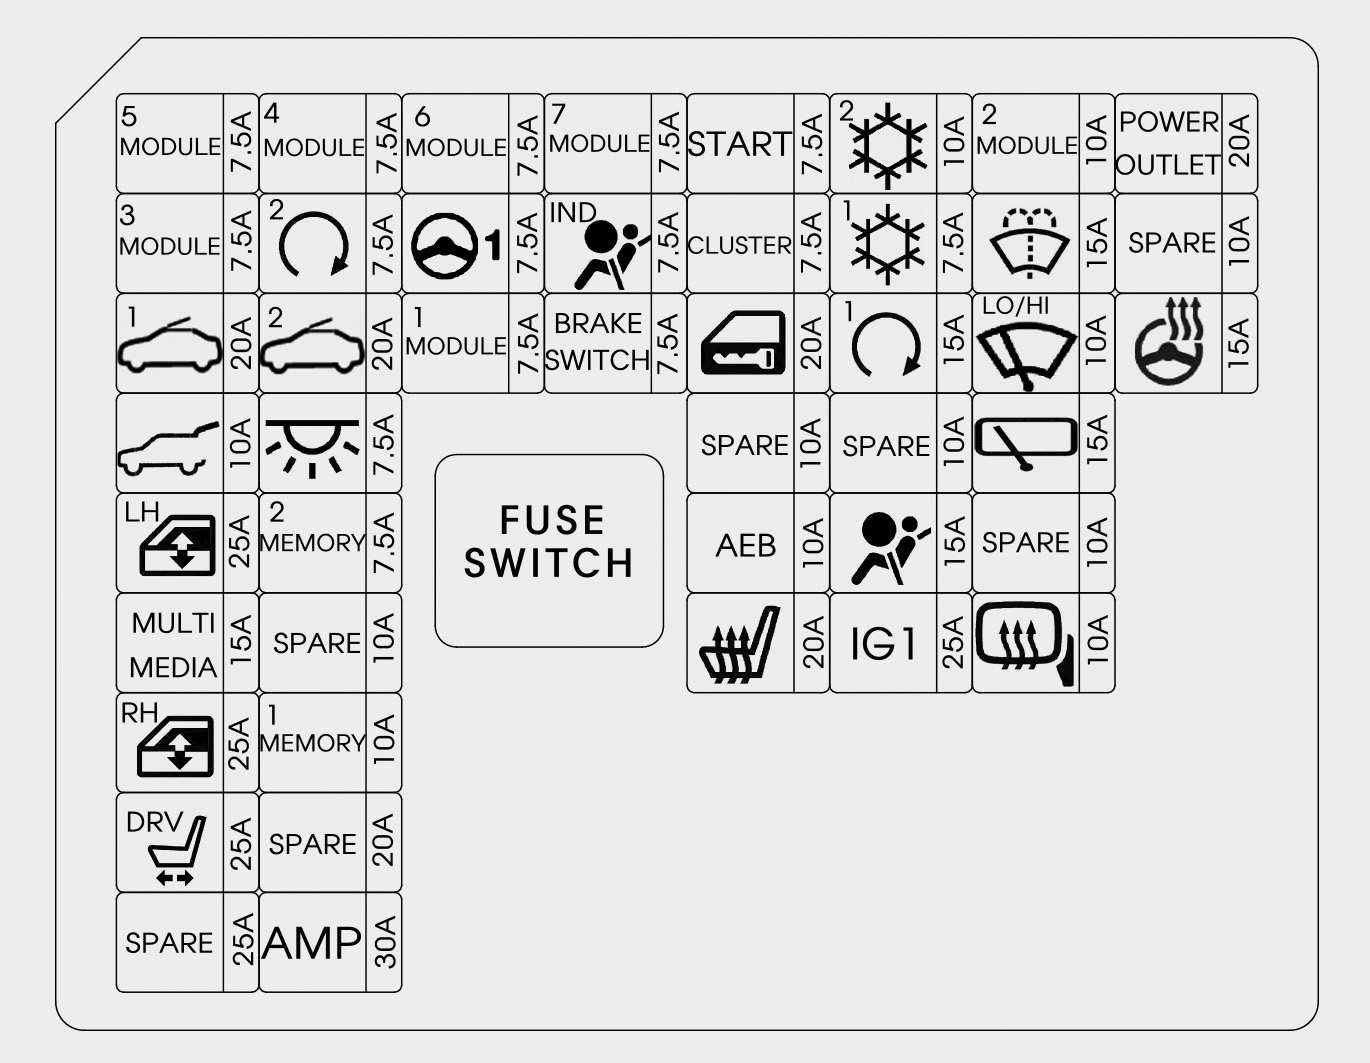 Hyundai Getz Fuse Box Wiring Diagram Third Level 2013 Santa Fe Layout Simple Forest River